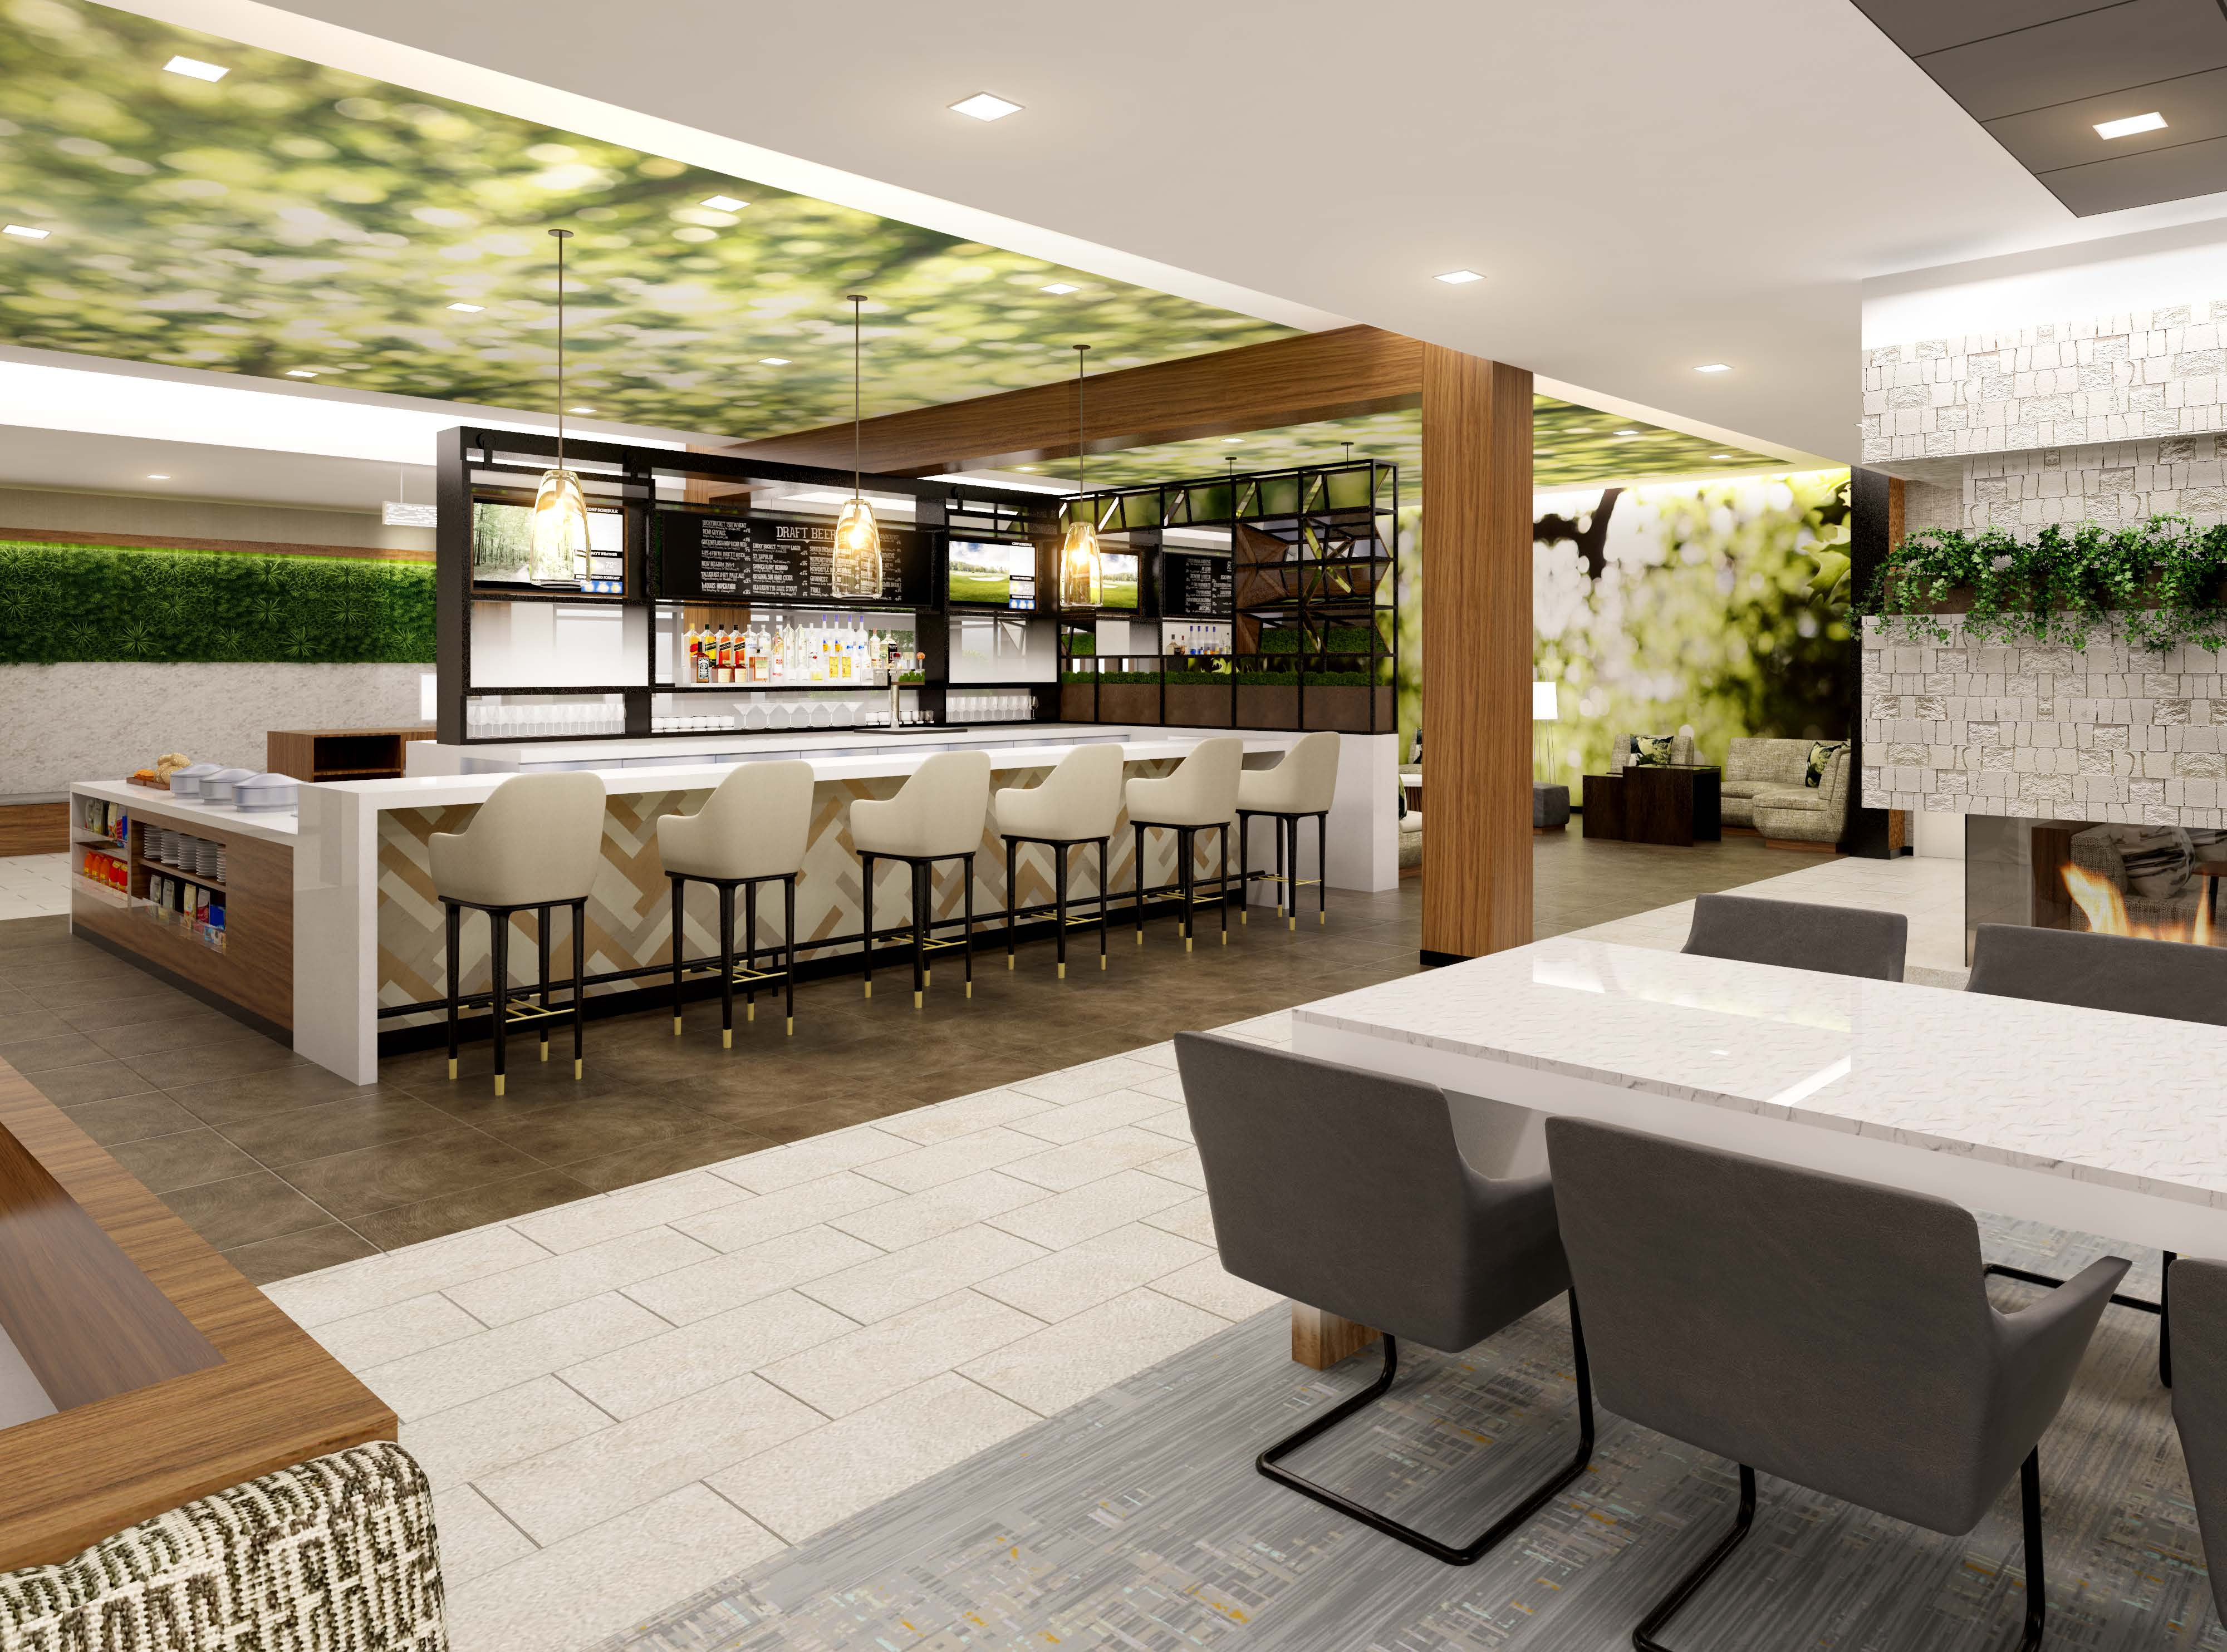 new wyndham garden prototype emphasizes ease and efficiencies - Windham Garden Inn